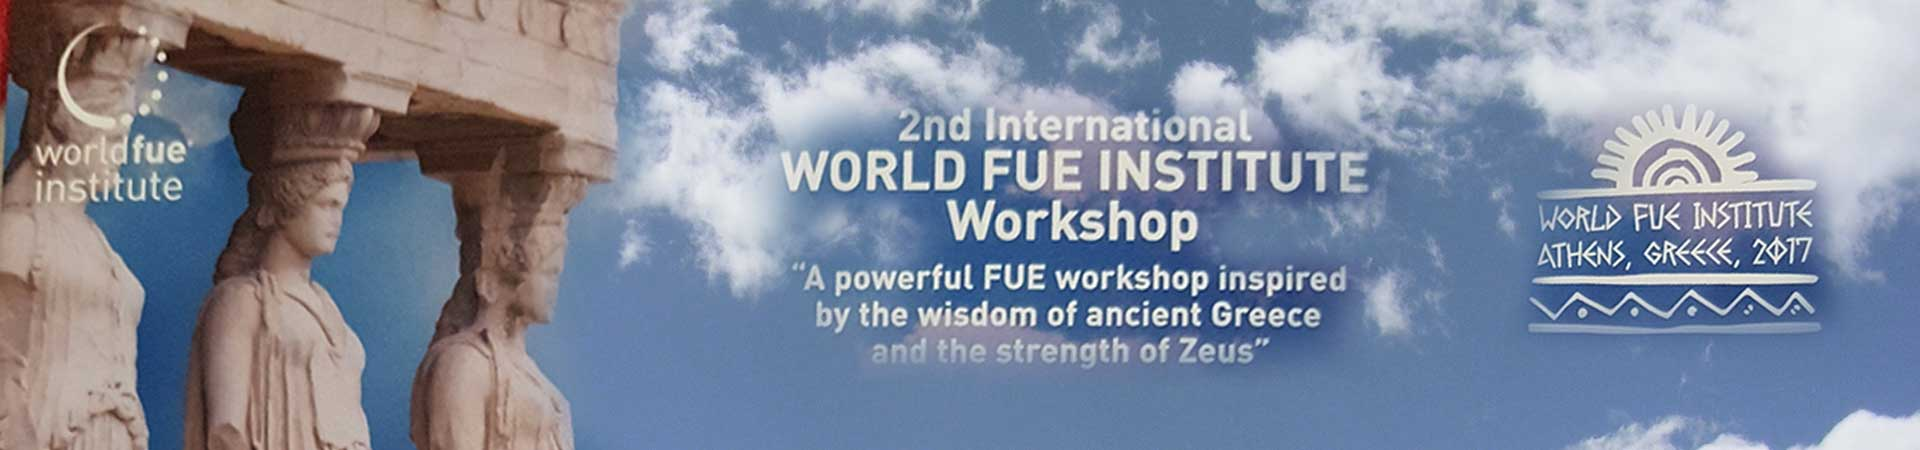 In Athen findet der 2. International World FUE Institute Workshop statt